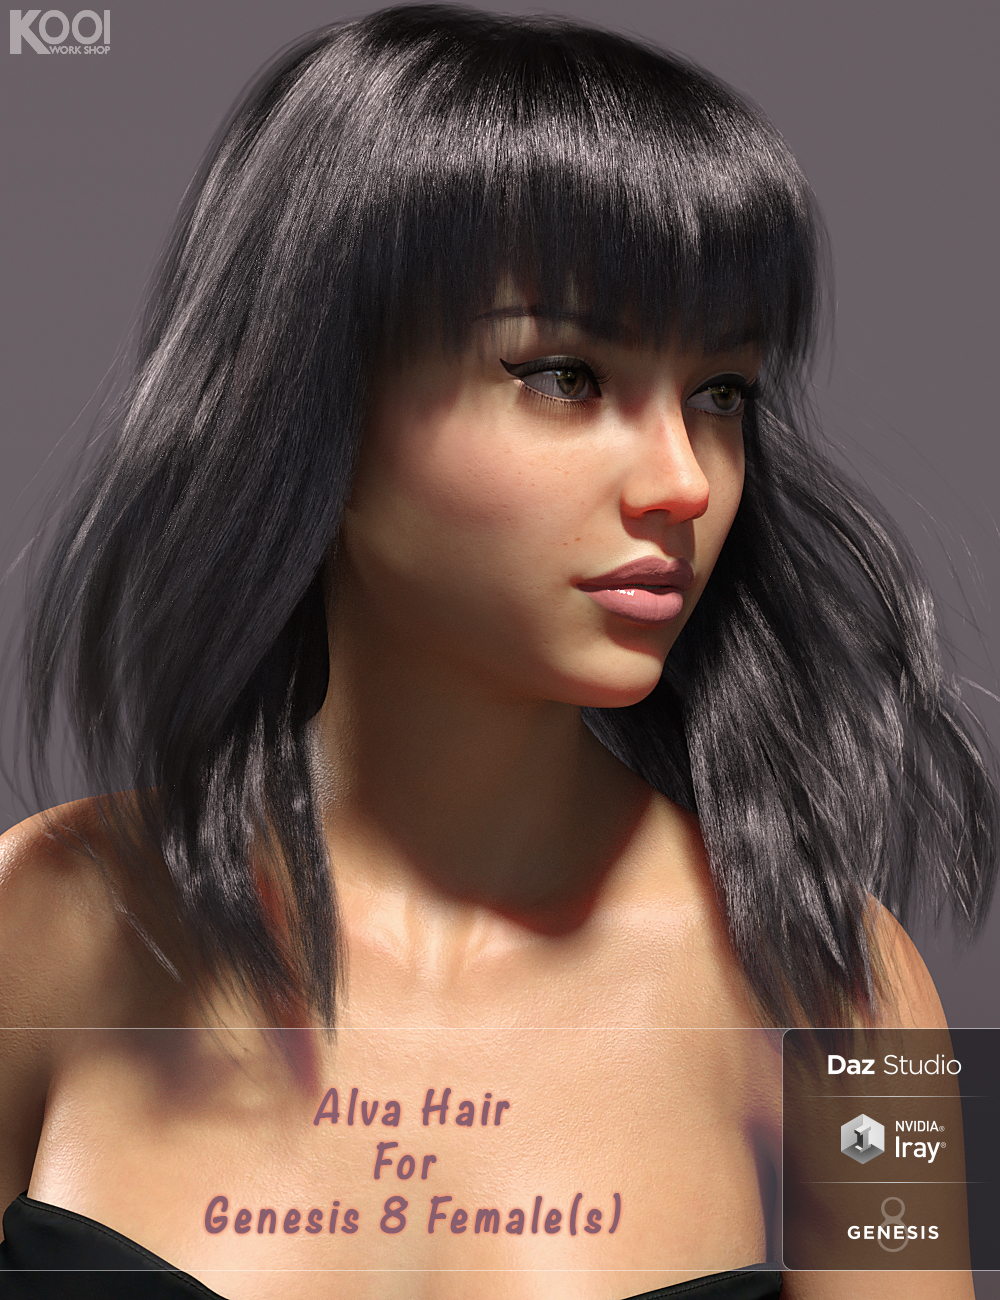 Alva Hair for Genesis 8 Female(s) by: Kool, 3D Models by Daz 3D